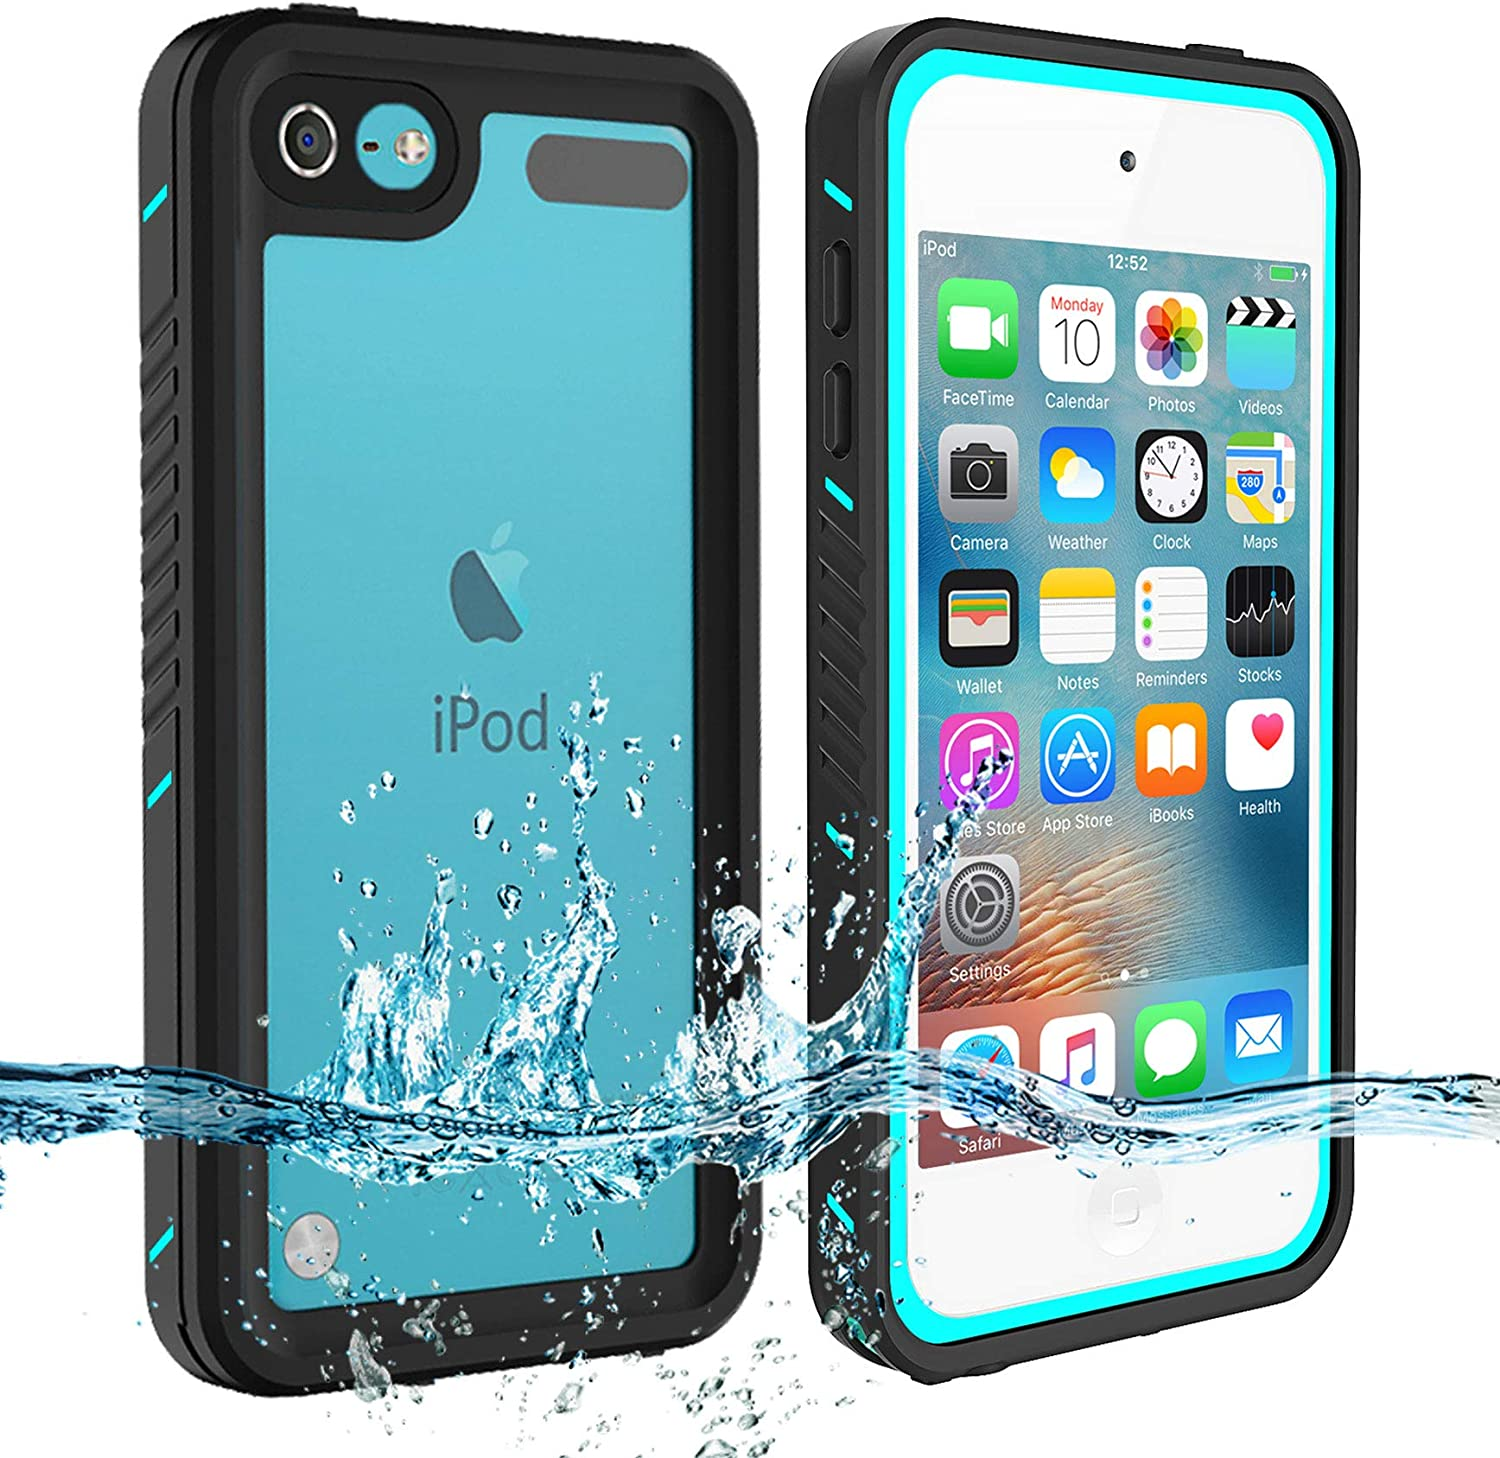 Shockproof Waterproof Case Screen Protector For Apple iPod Touch 5 6 5th 6th Gen